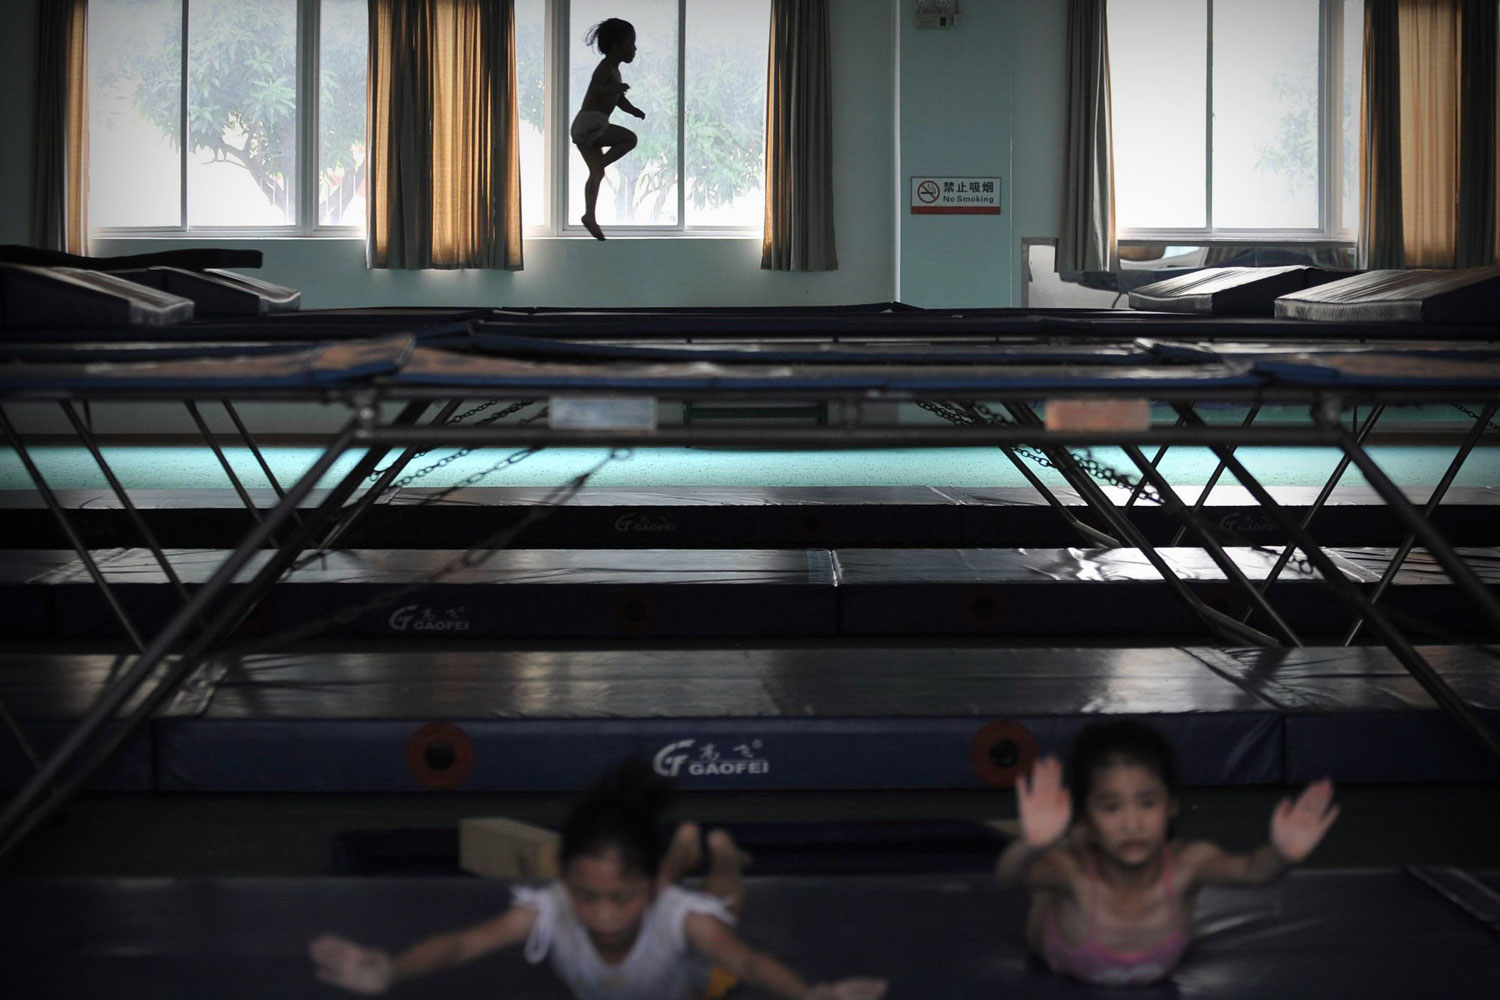 July 6, 2011. Children on the provincial children's gymnastics trampoline team exercise in a gym in Fuzhou in southeast China's Fujian province. Over 30 children under age 12 in the team, selected from around the province, go through hard training in the sports center, aiming to be Olympic medalists in the future.